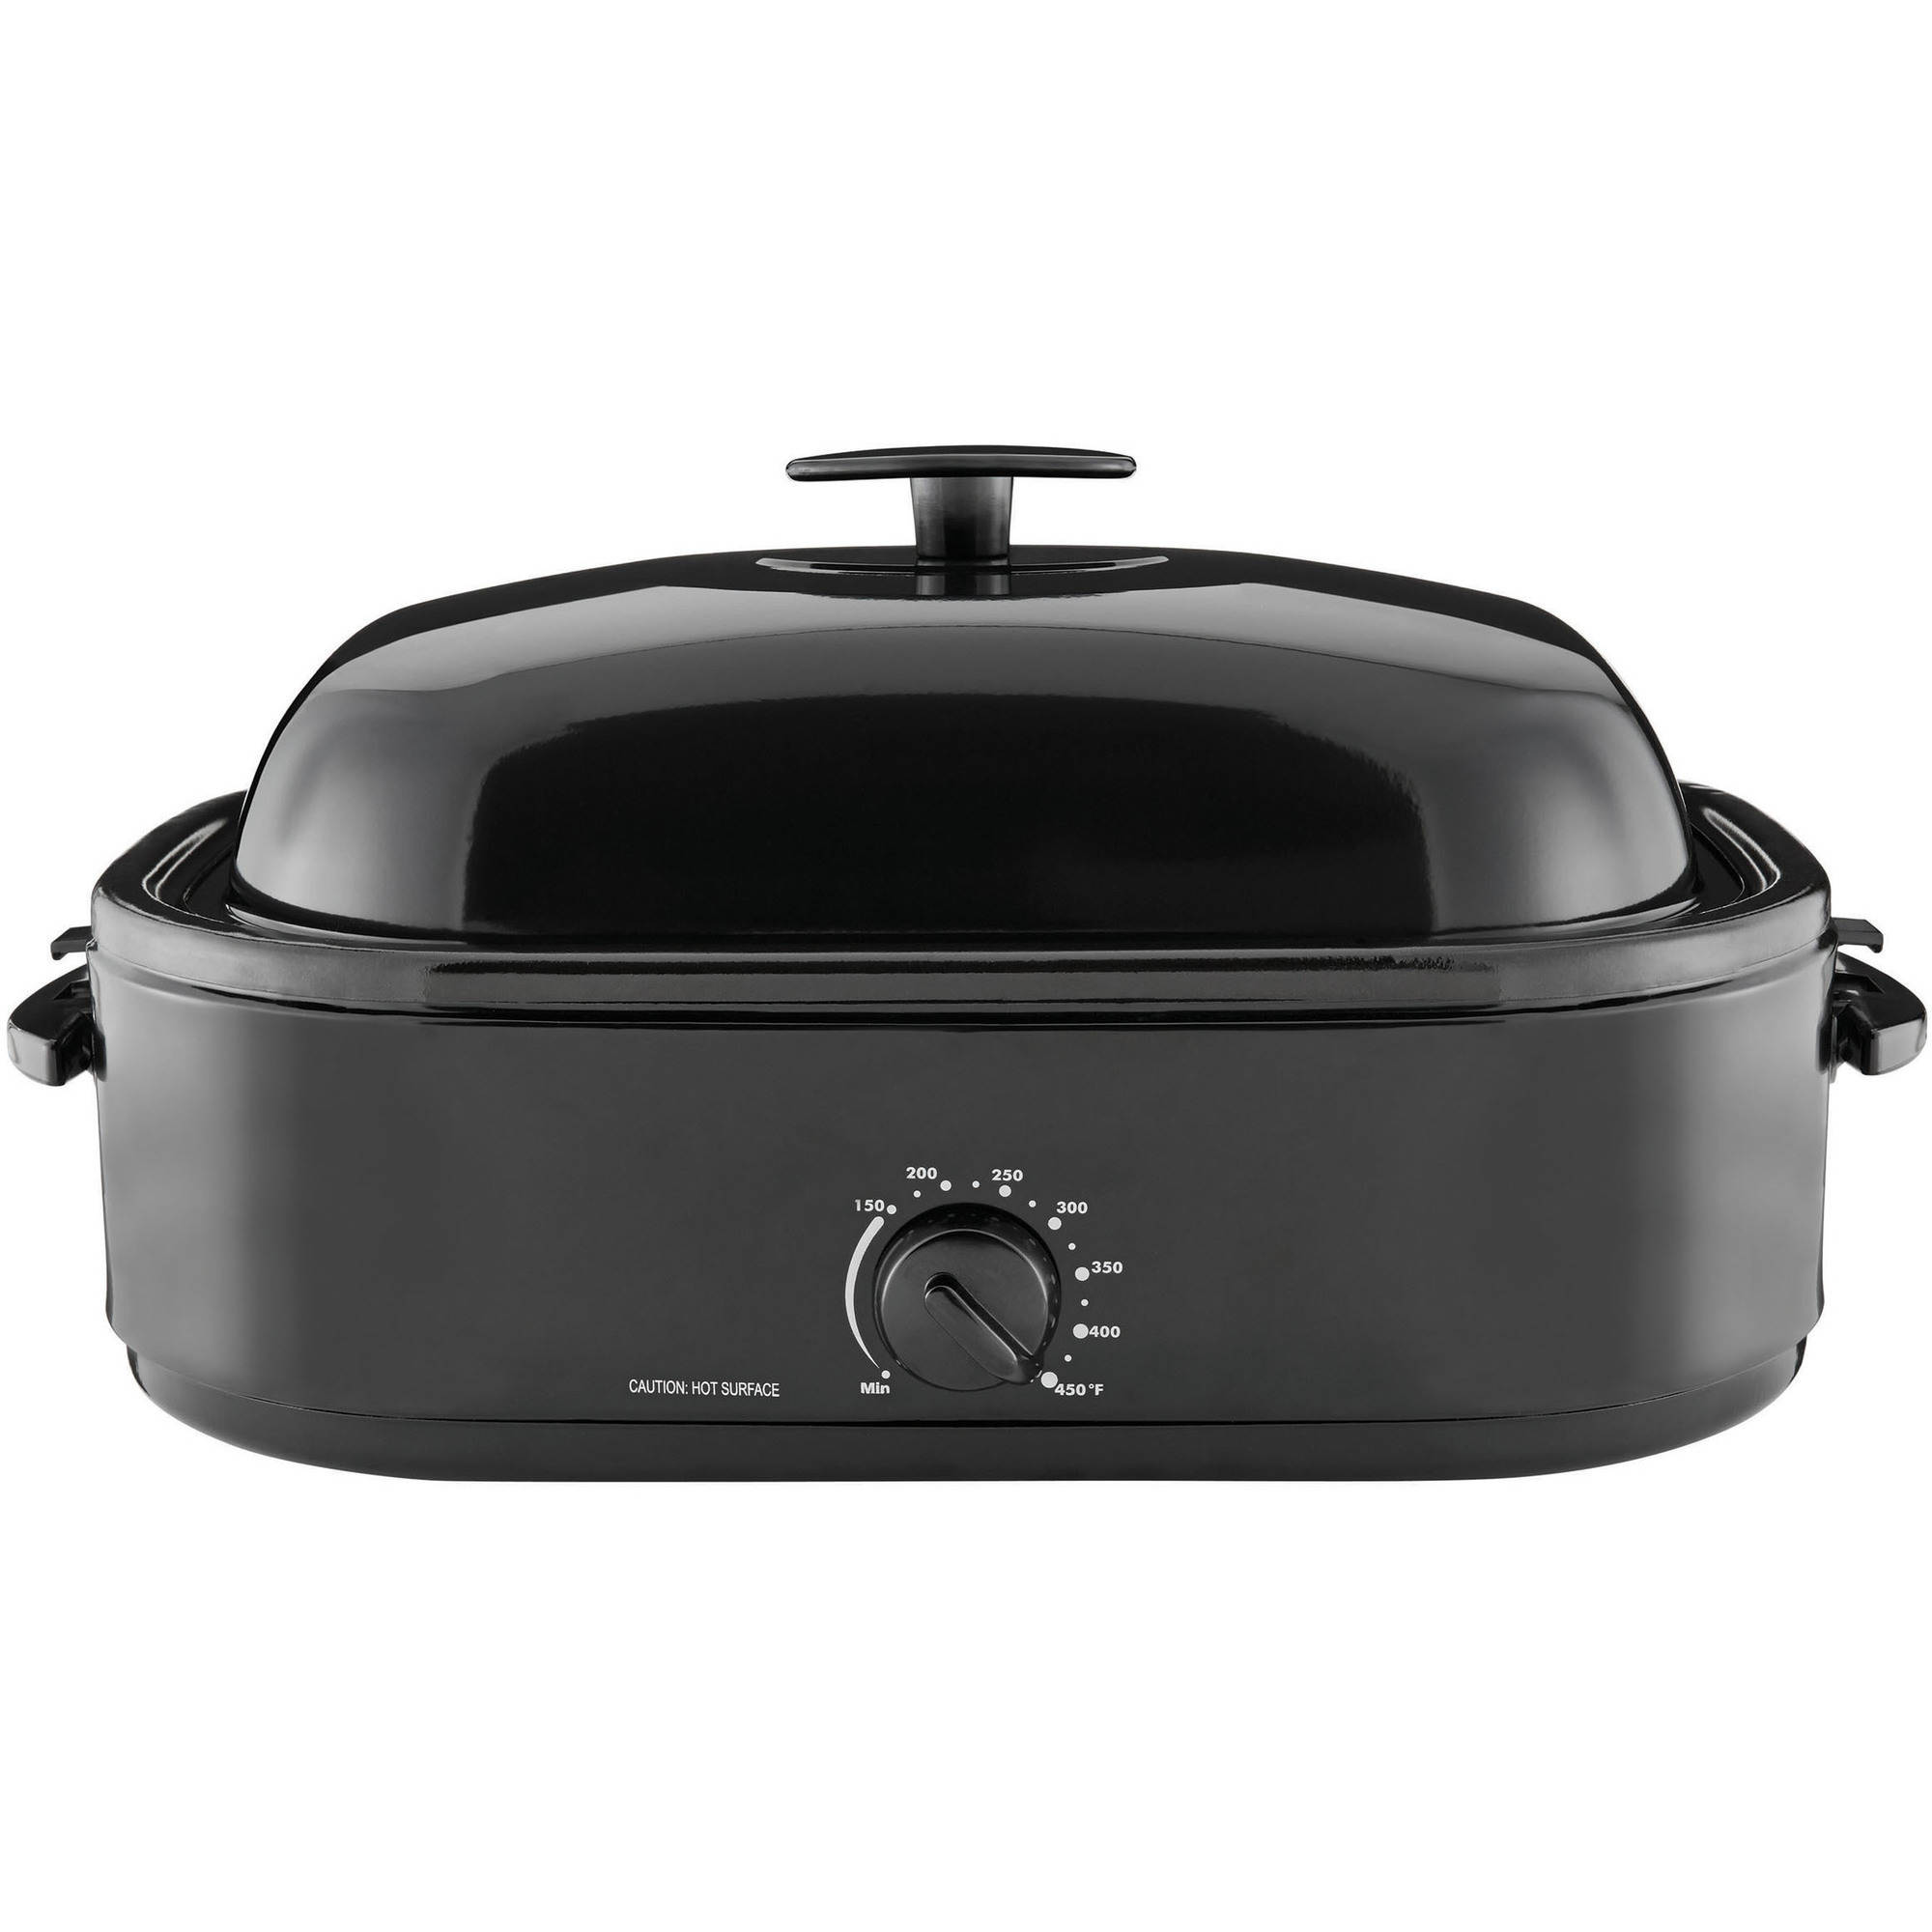 Mainstays 20 Pound Turkey Roaster With High Dome Lid 14 Quart